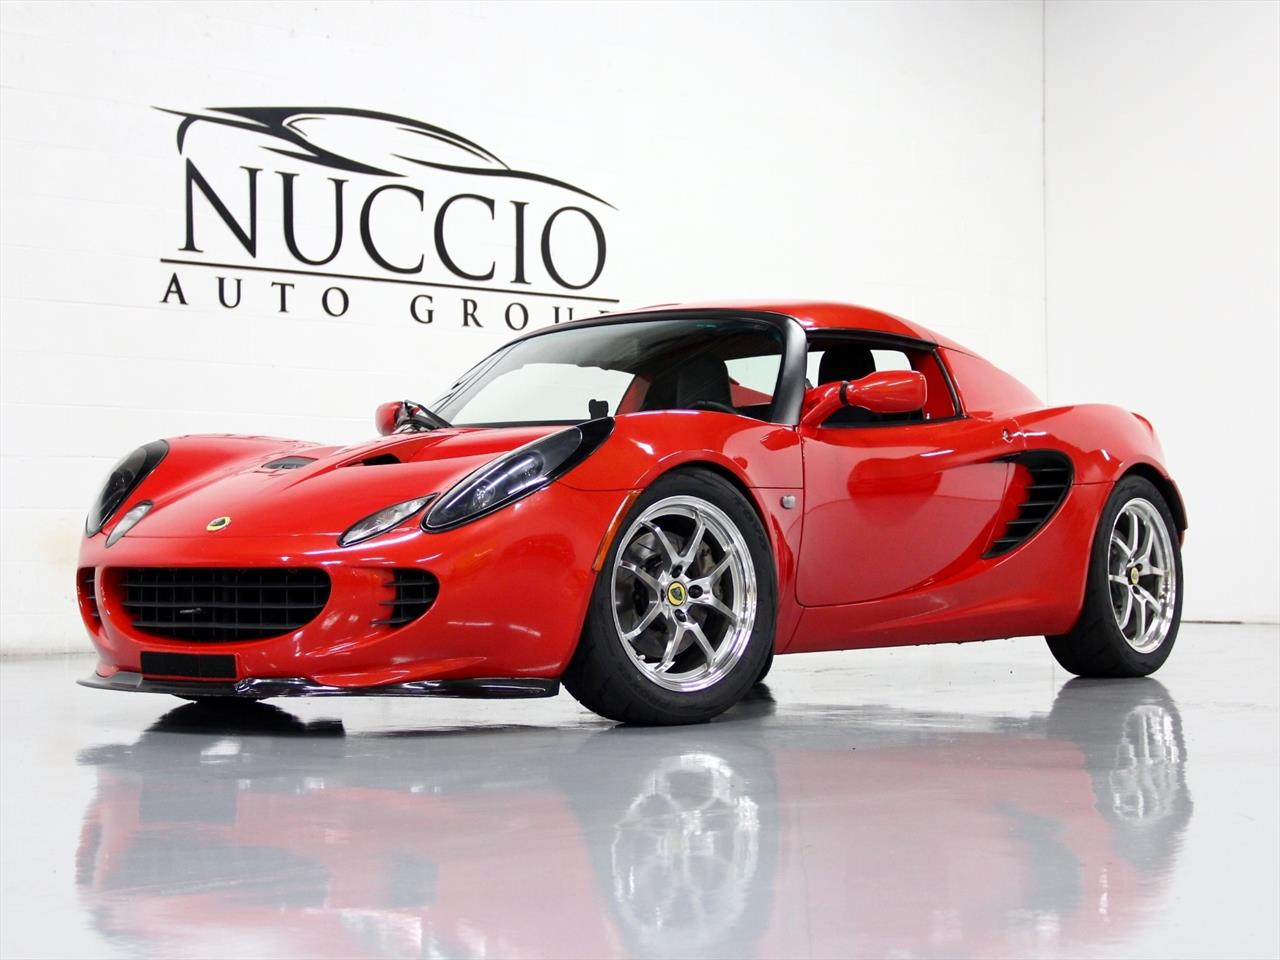 2006 Lotus Elise Super Charged